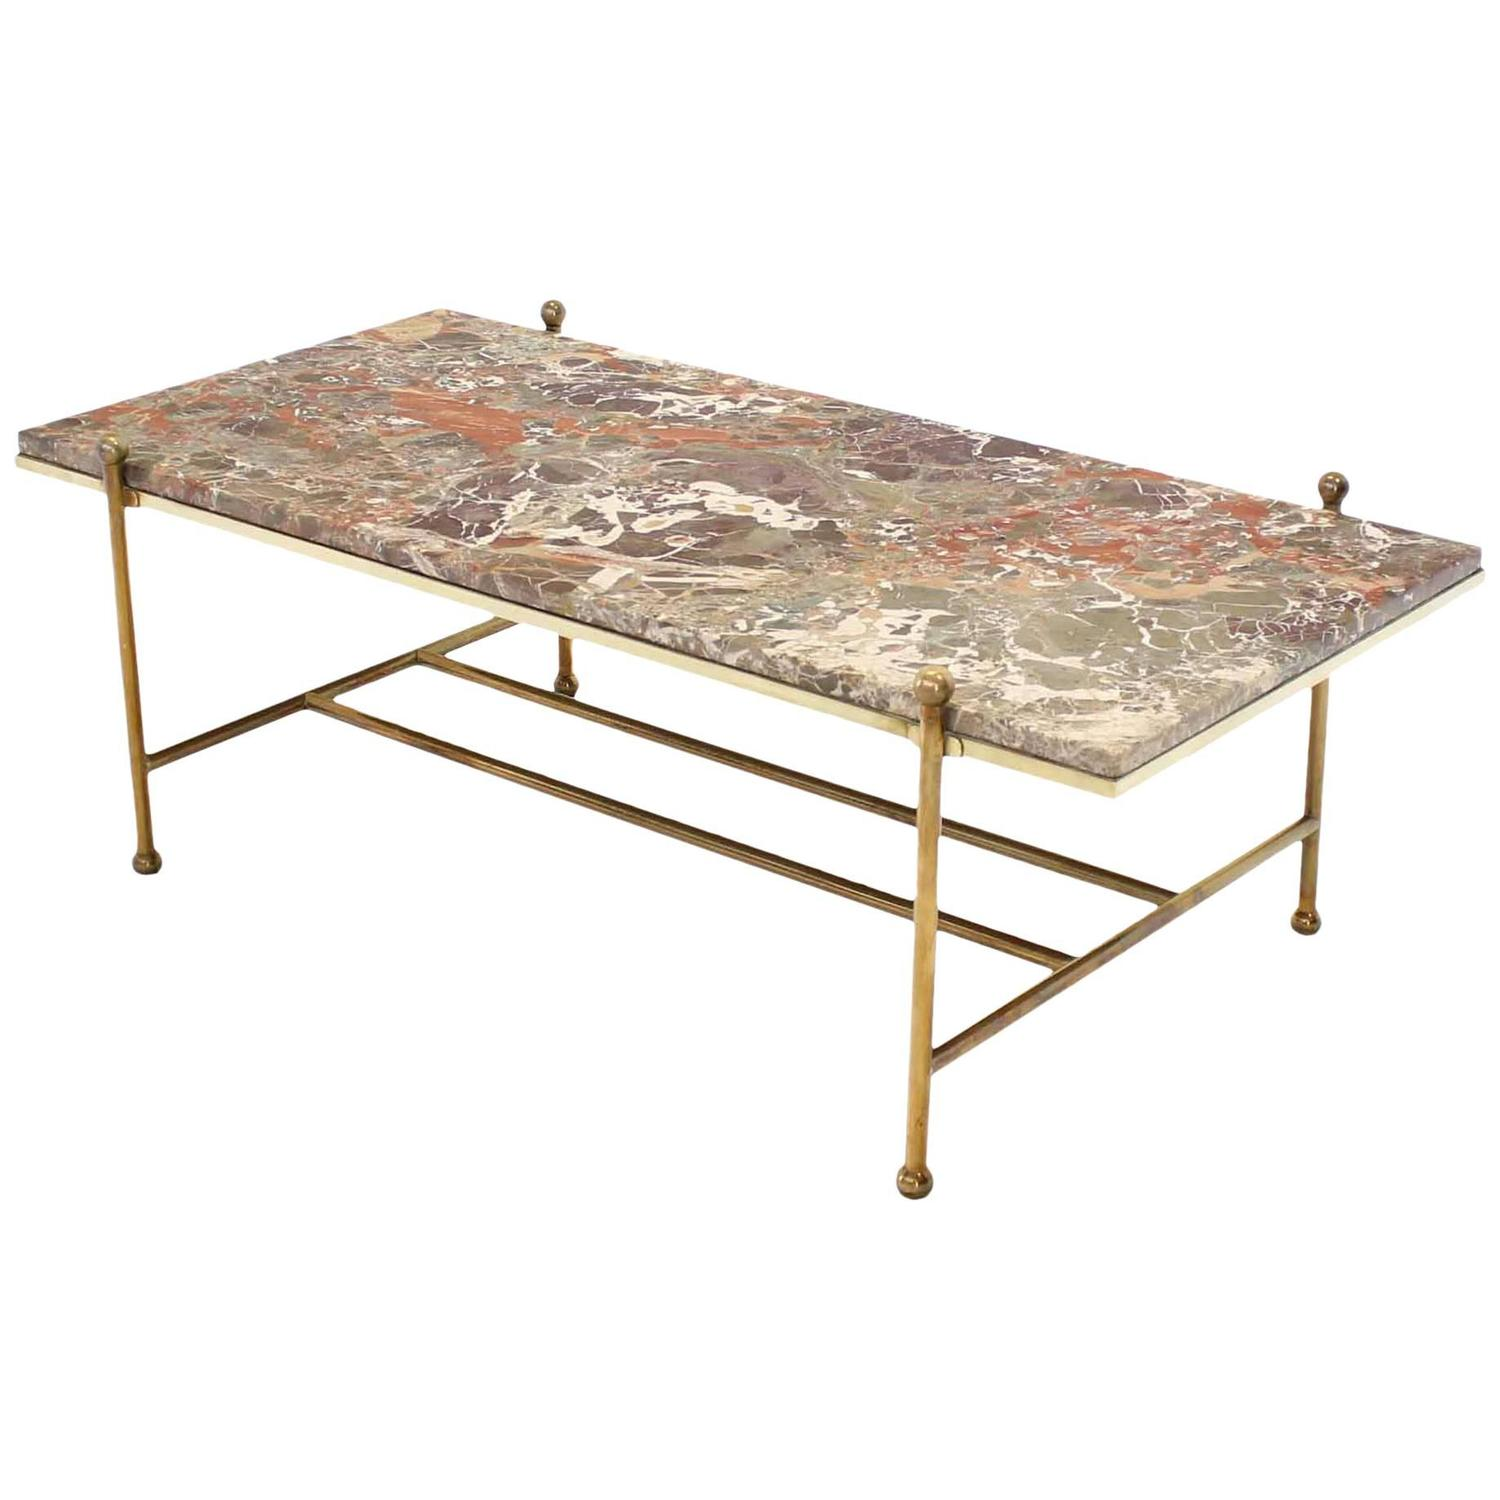 Mid Century Brass Marble Round Coffee Table: Brass And Marble Mid-Century Modern Coffee Table For Sale